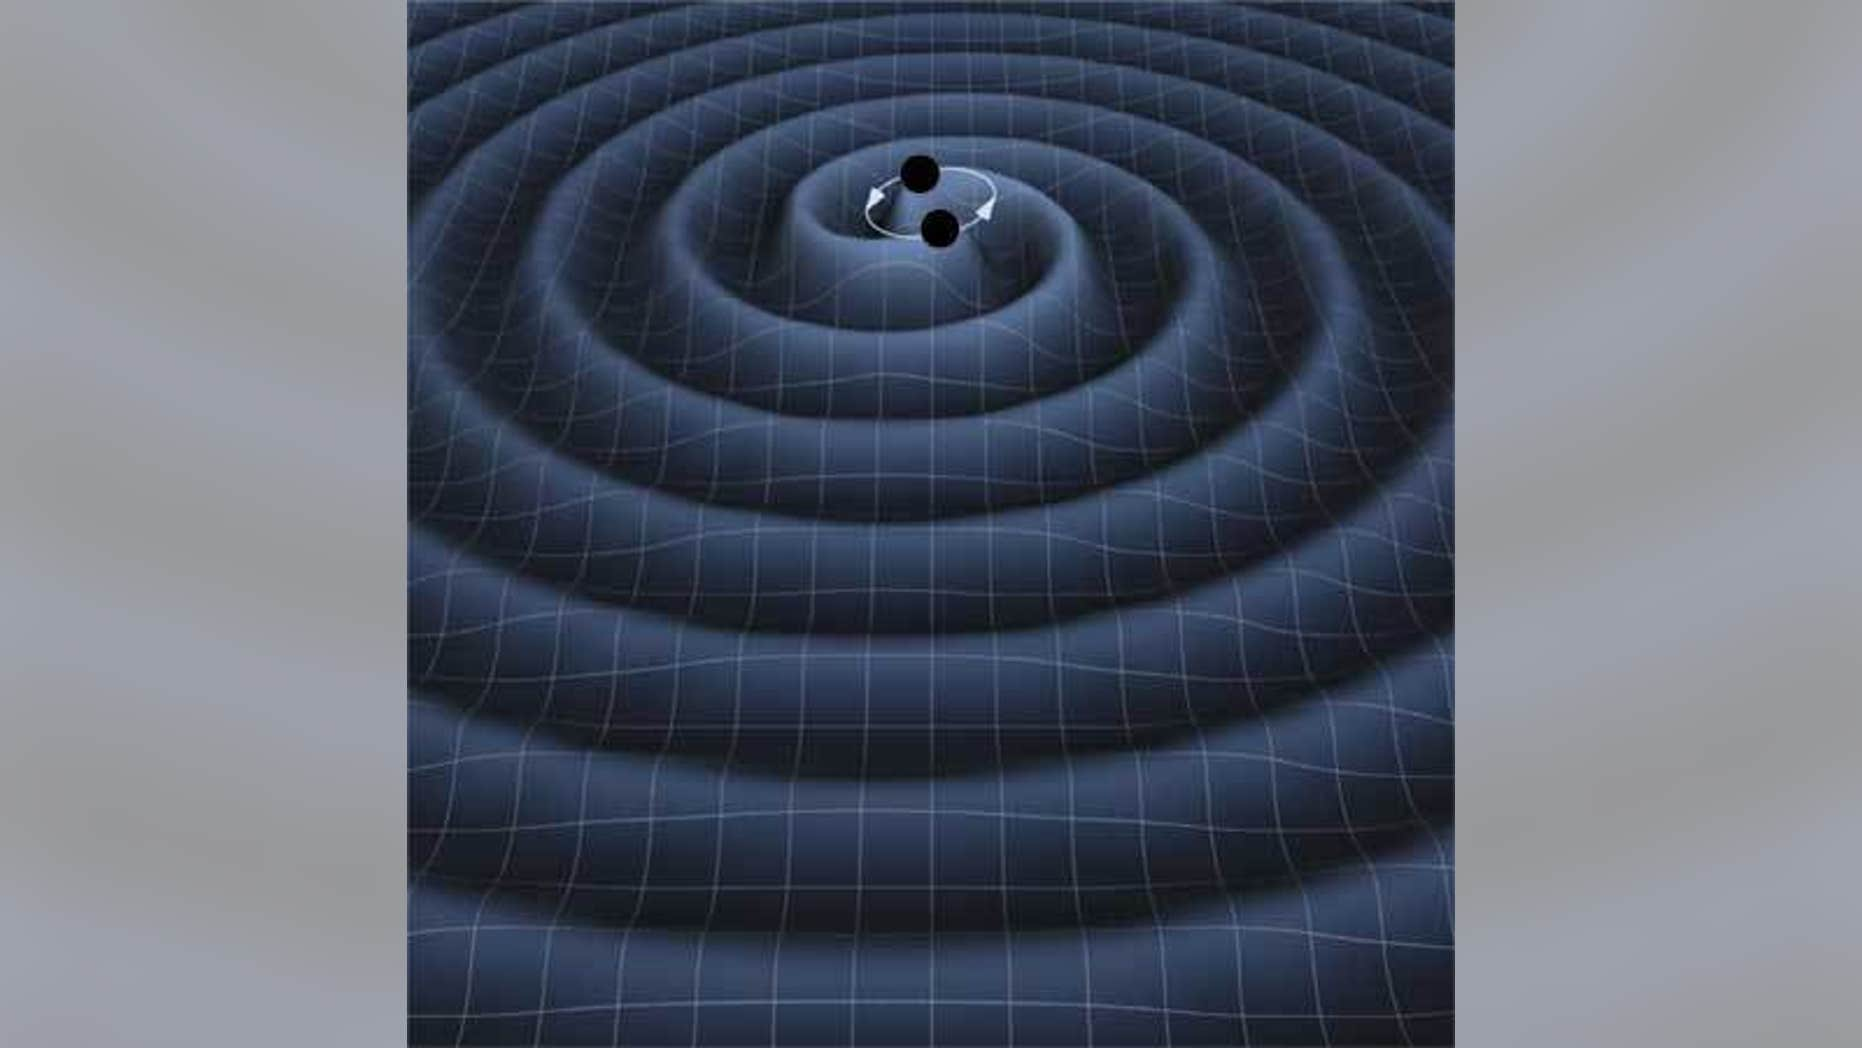 Artist's impression of gravitational waves from two orbiting black holes.